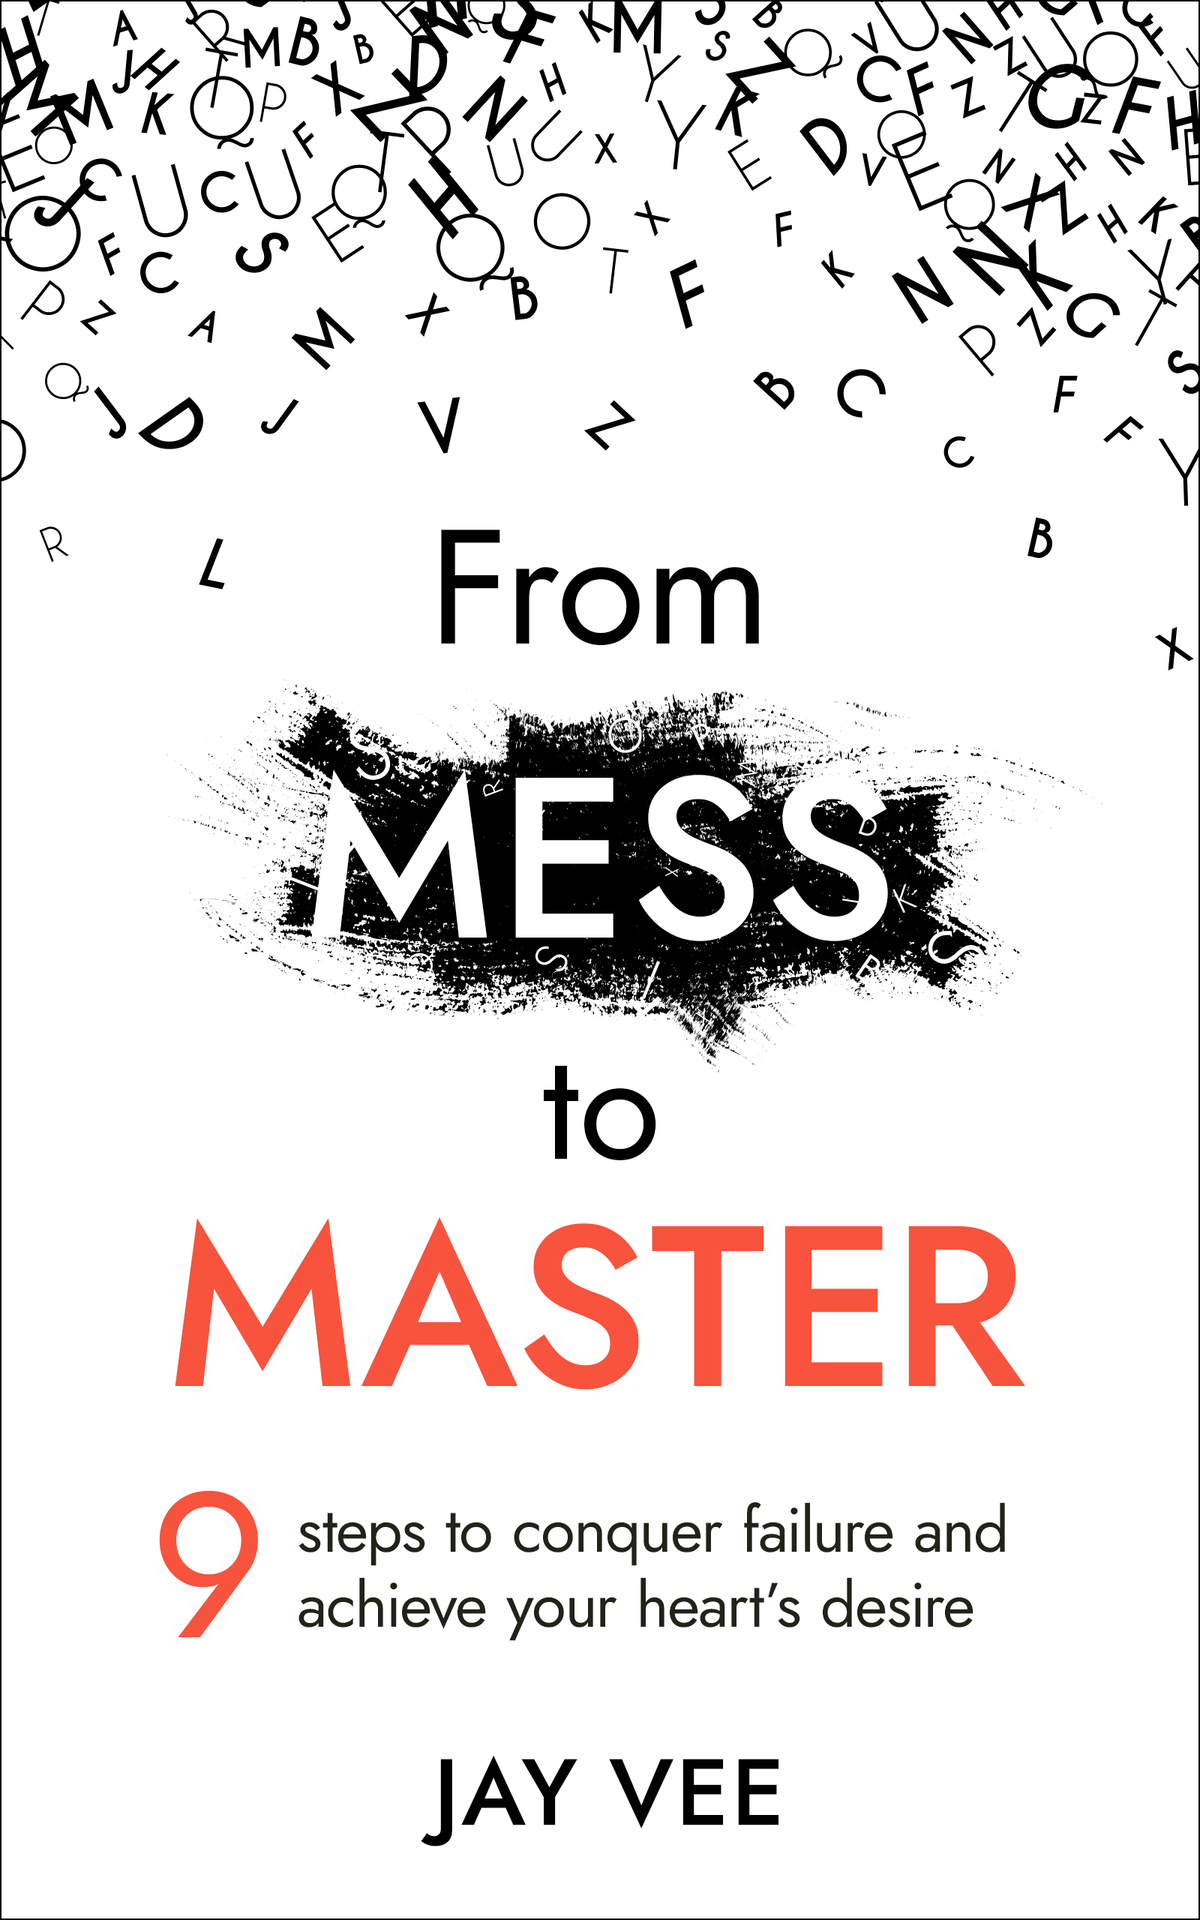 From Mess to Master - 9 Steps to conquer failure and achieve your heart´s desire